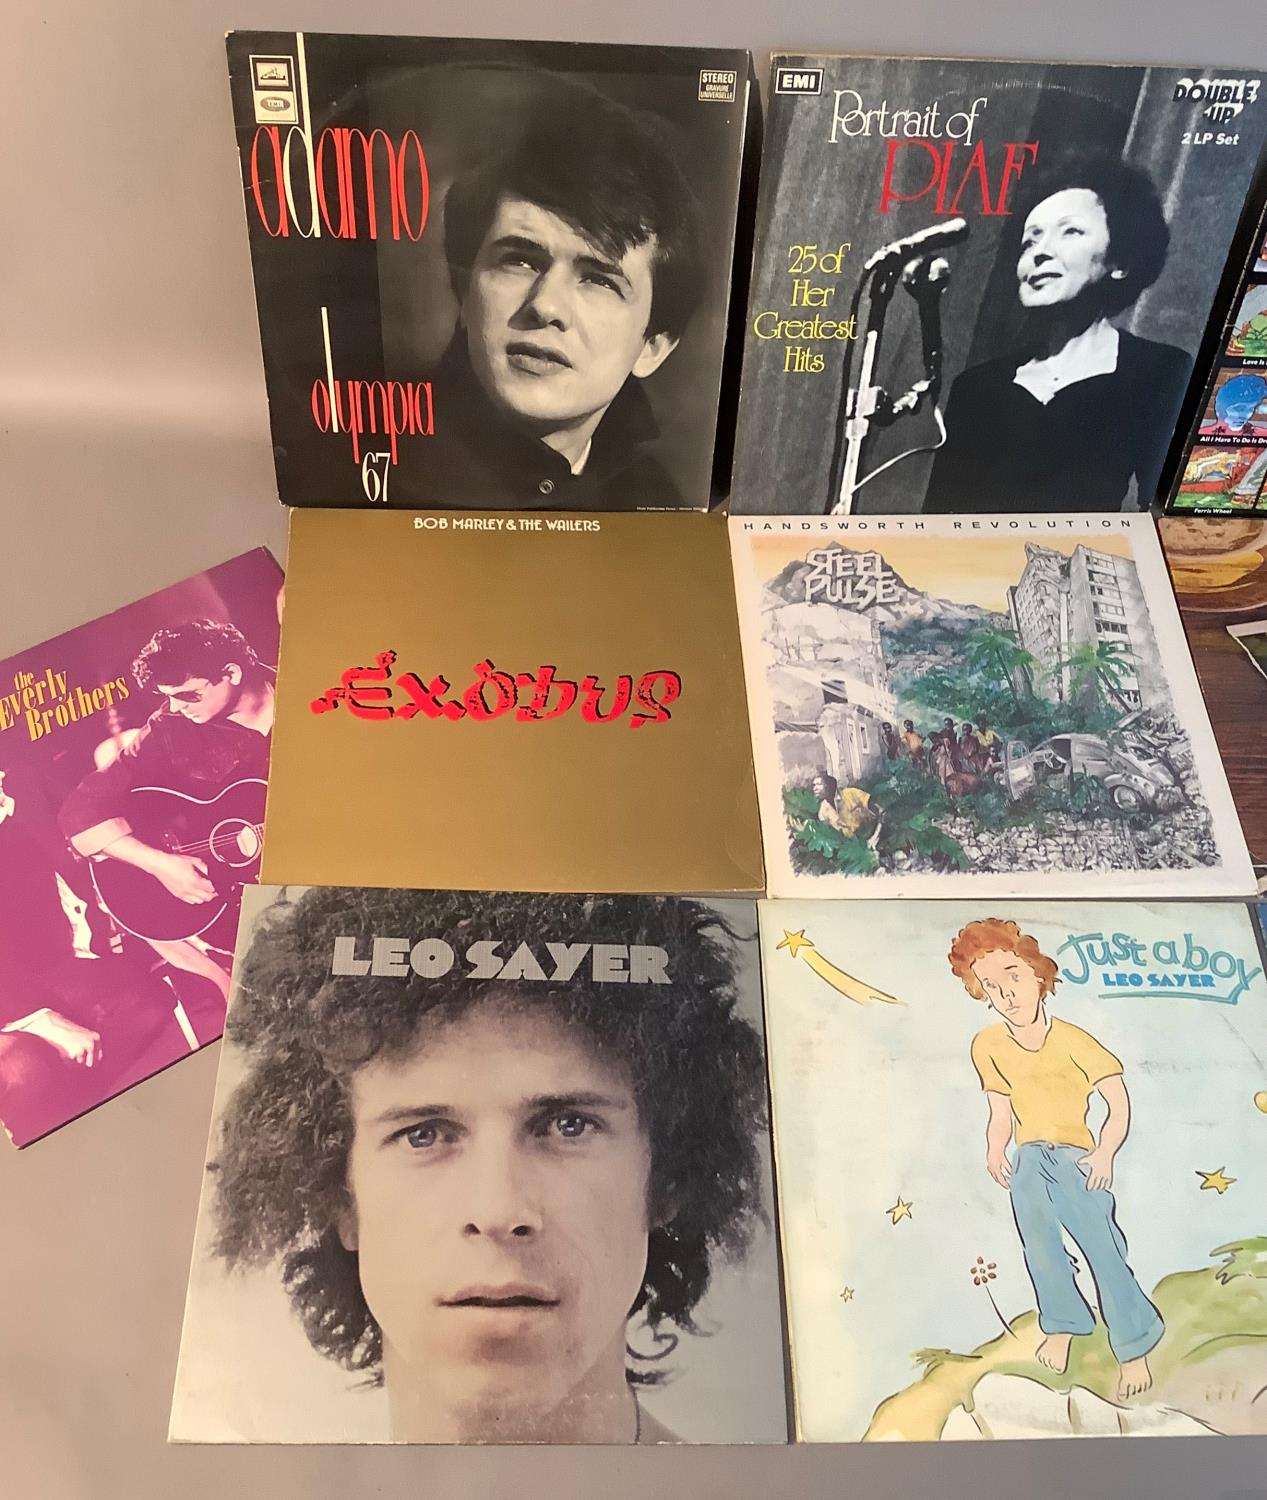 A quantity of LP's to include: Adamo - Olympia '67, Edith Piaf - Portrait of Piaf, Everly Brothers - - Image 3 of 4